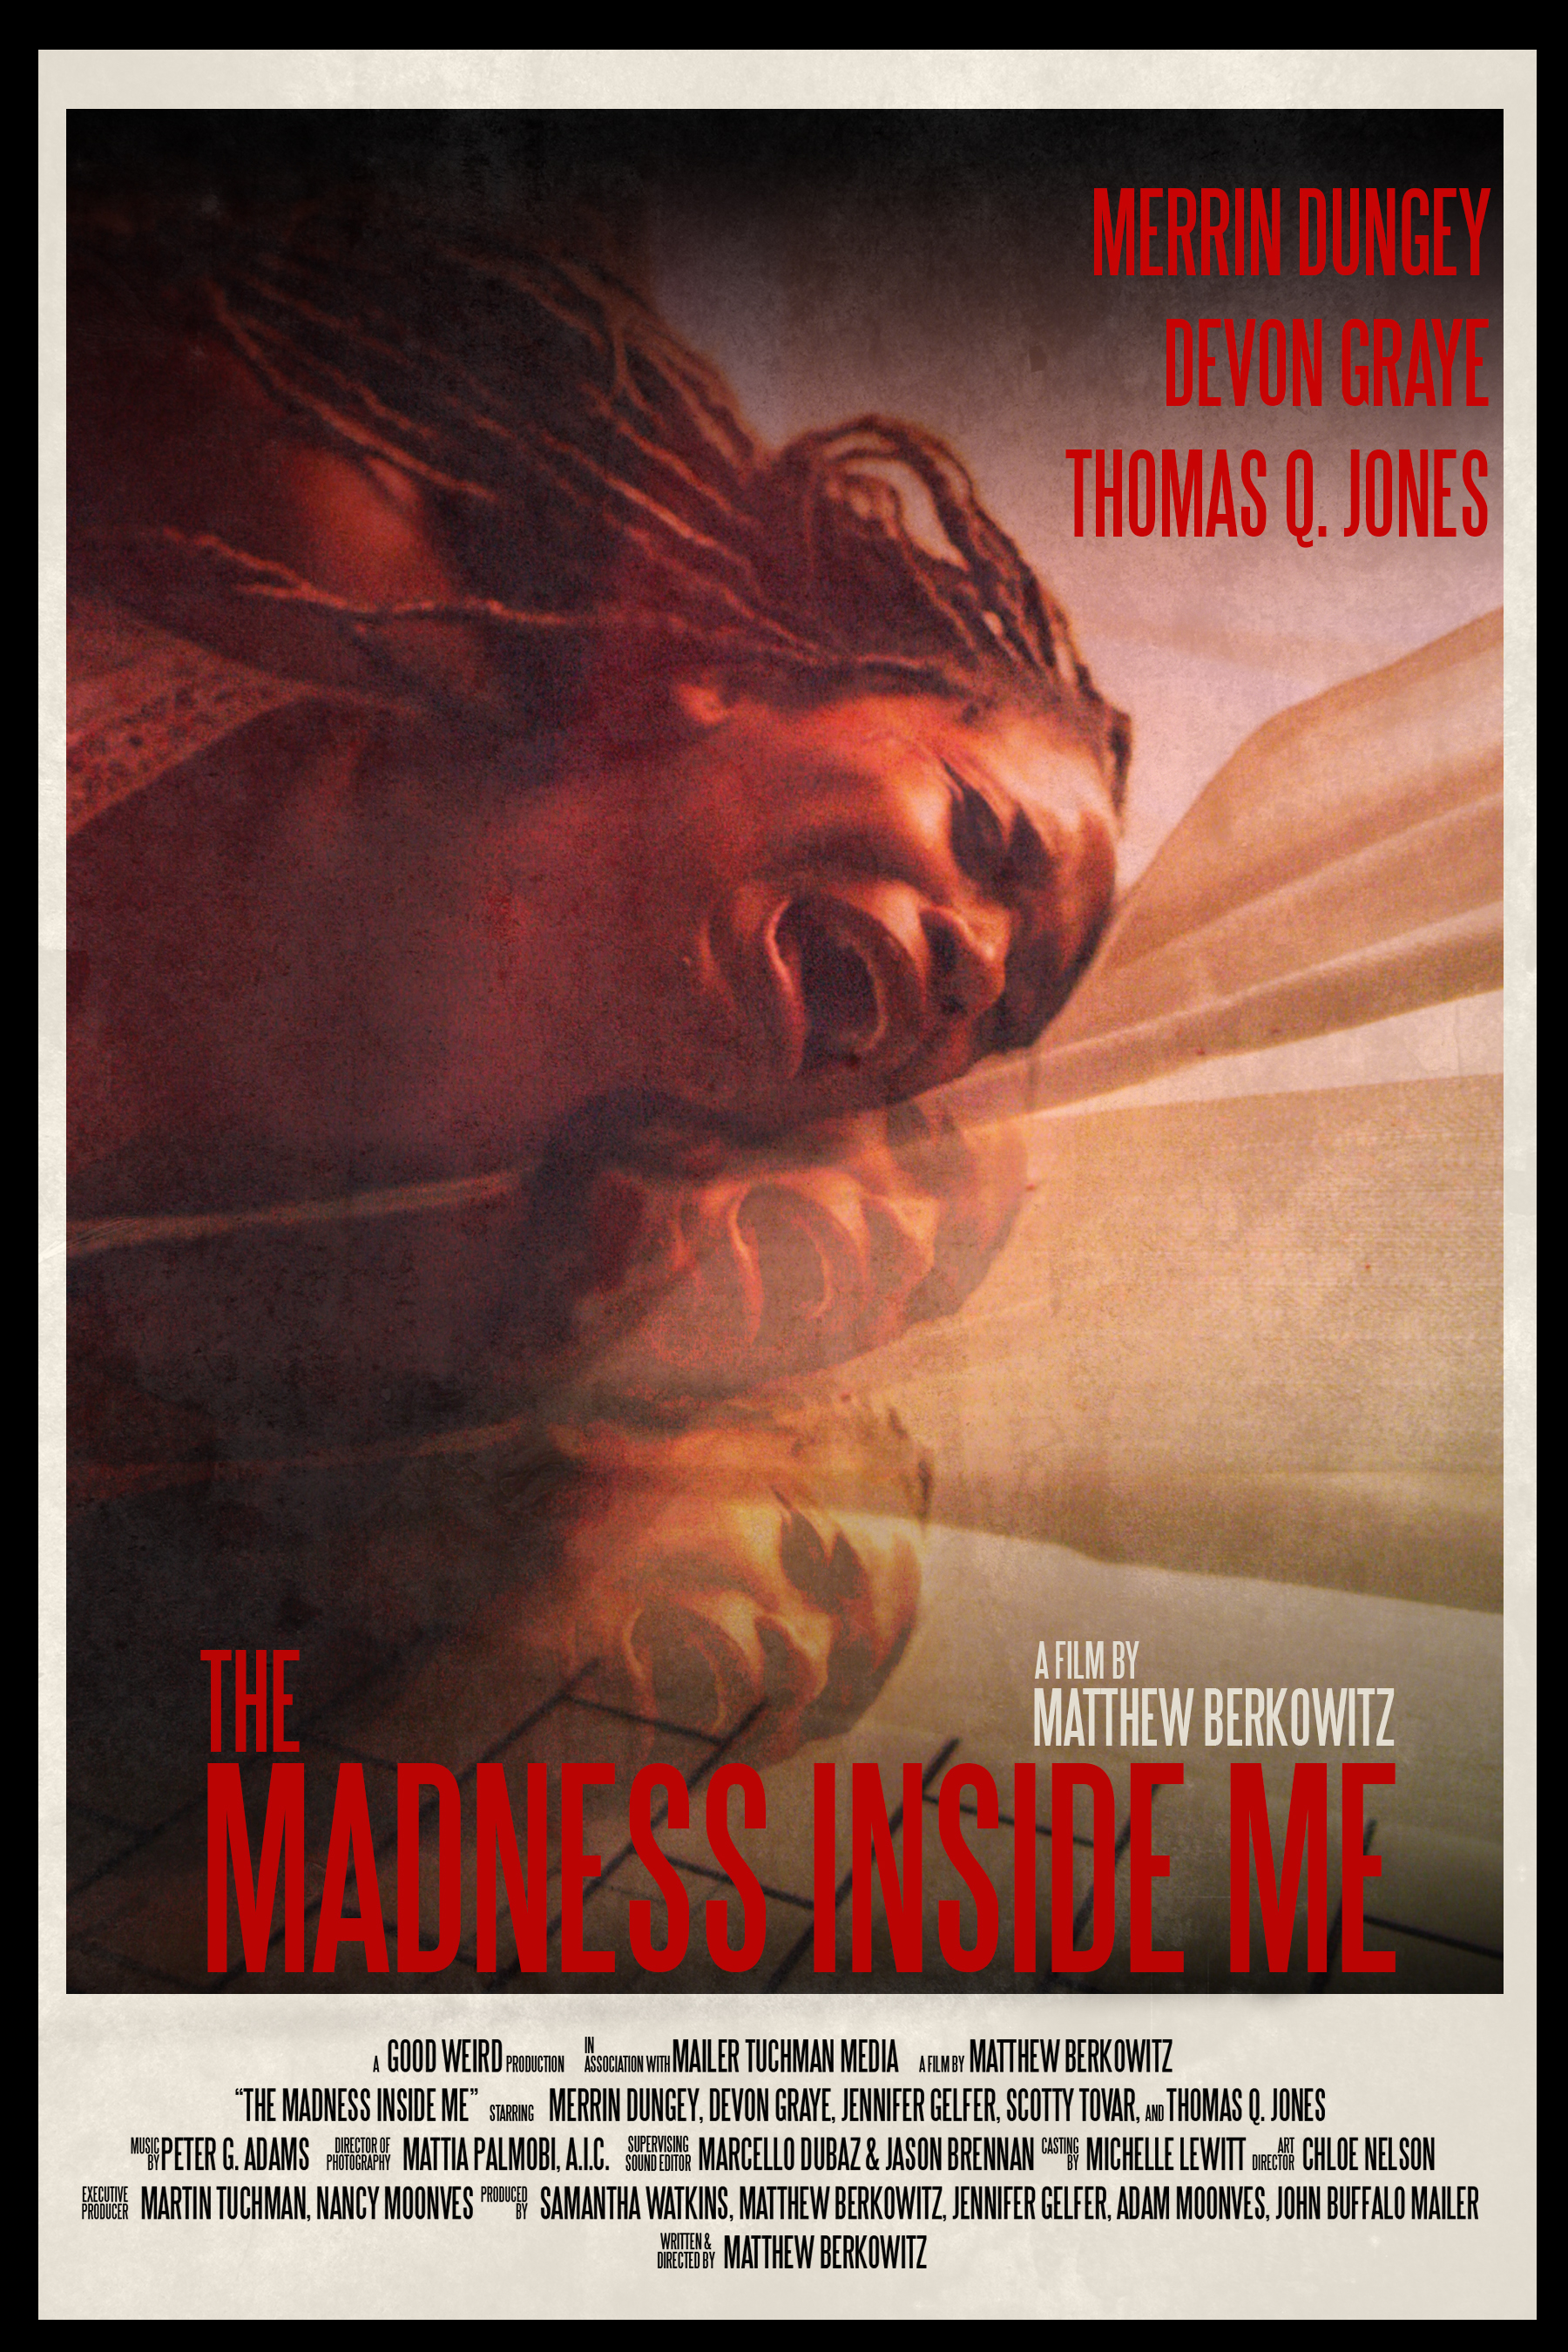 Download The Madness Inside Me (2020) Tamil Dubbed (Voice Over) & English [Dual Audio] WebRip 720p [1XBET] Full Movie Online On 1xcinema.com